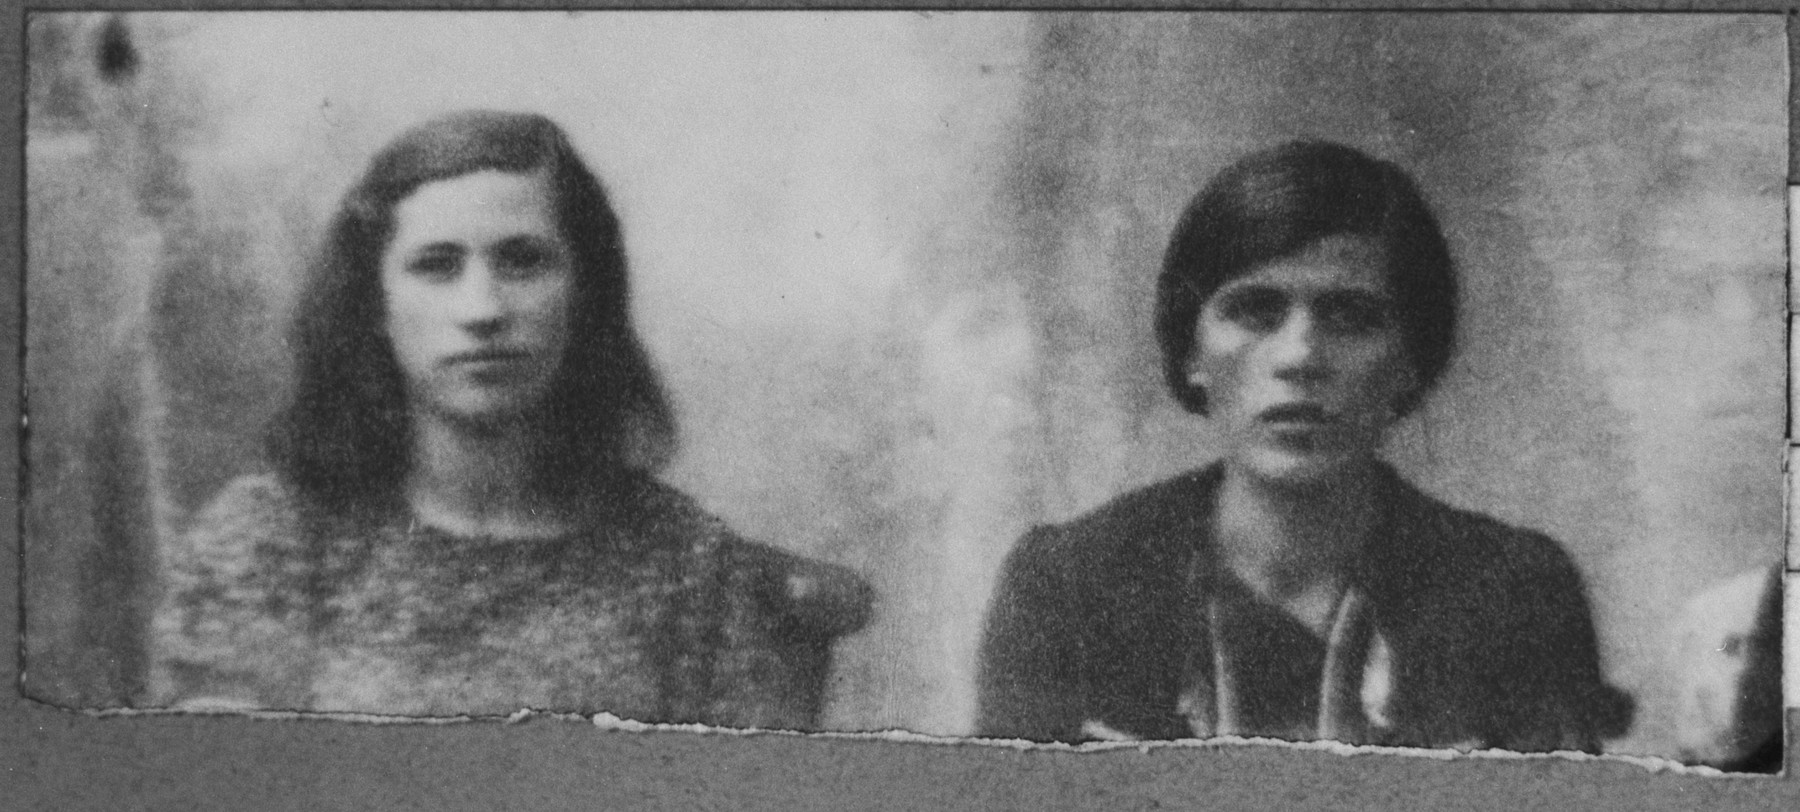 Portrait of Juli Nissan and an unidentified woman.  Juli, the daughter of Mushon Nissan, lived at Zvornitska 5 in Bitola.